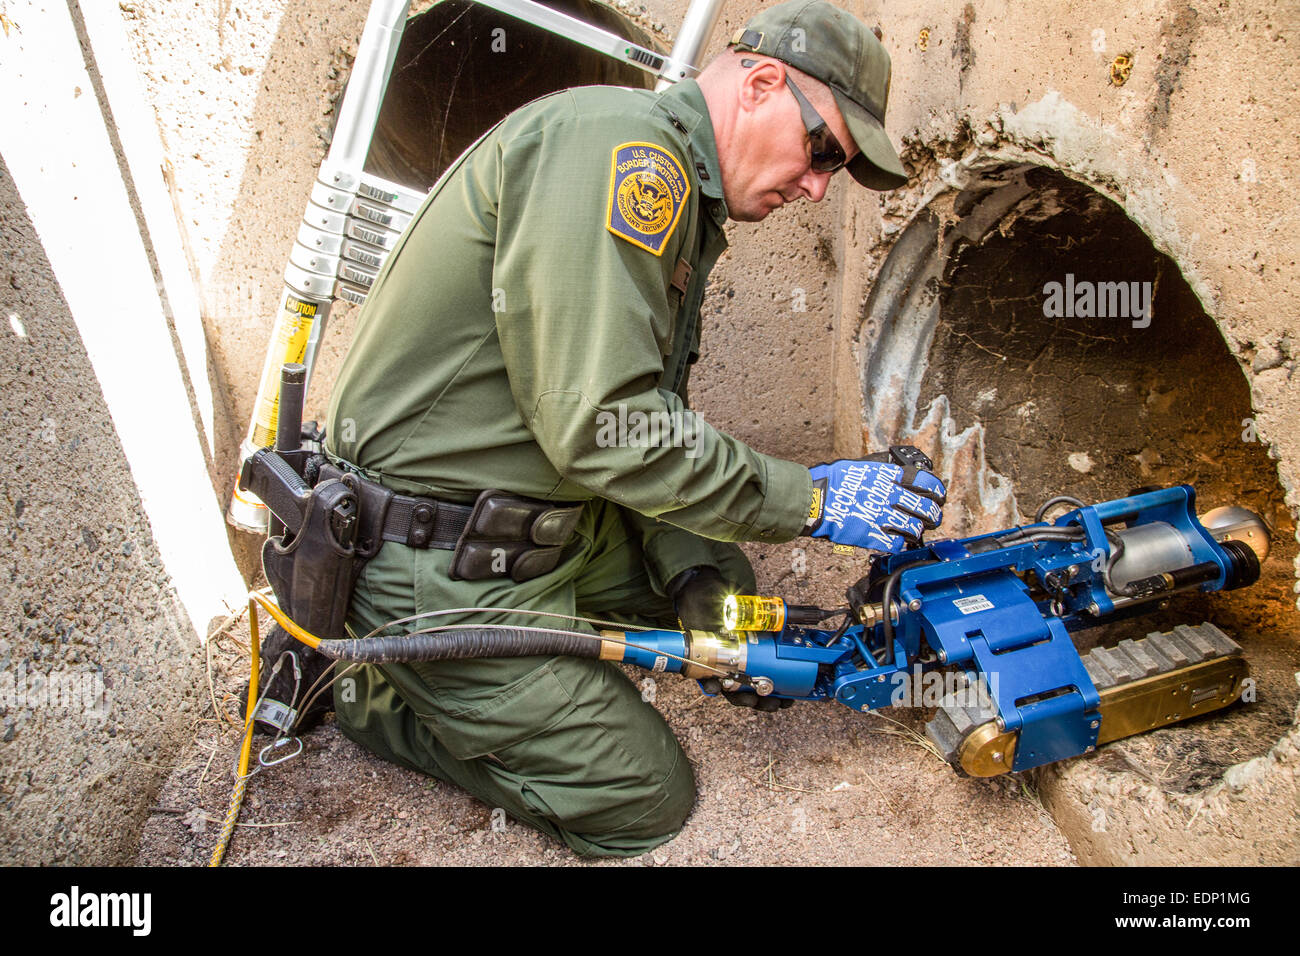 US Customs and Border Protection Officers operate a Versatrax 150 pipe inspection robot. See description for more - Stock Image